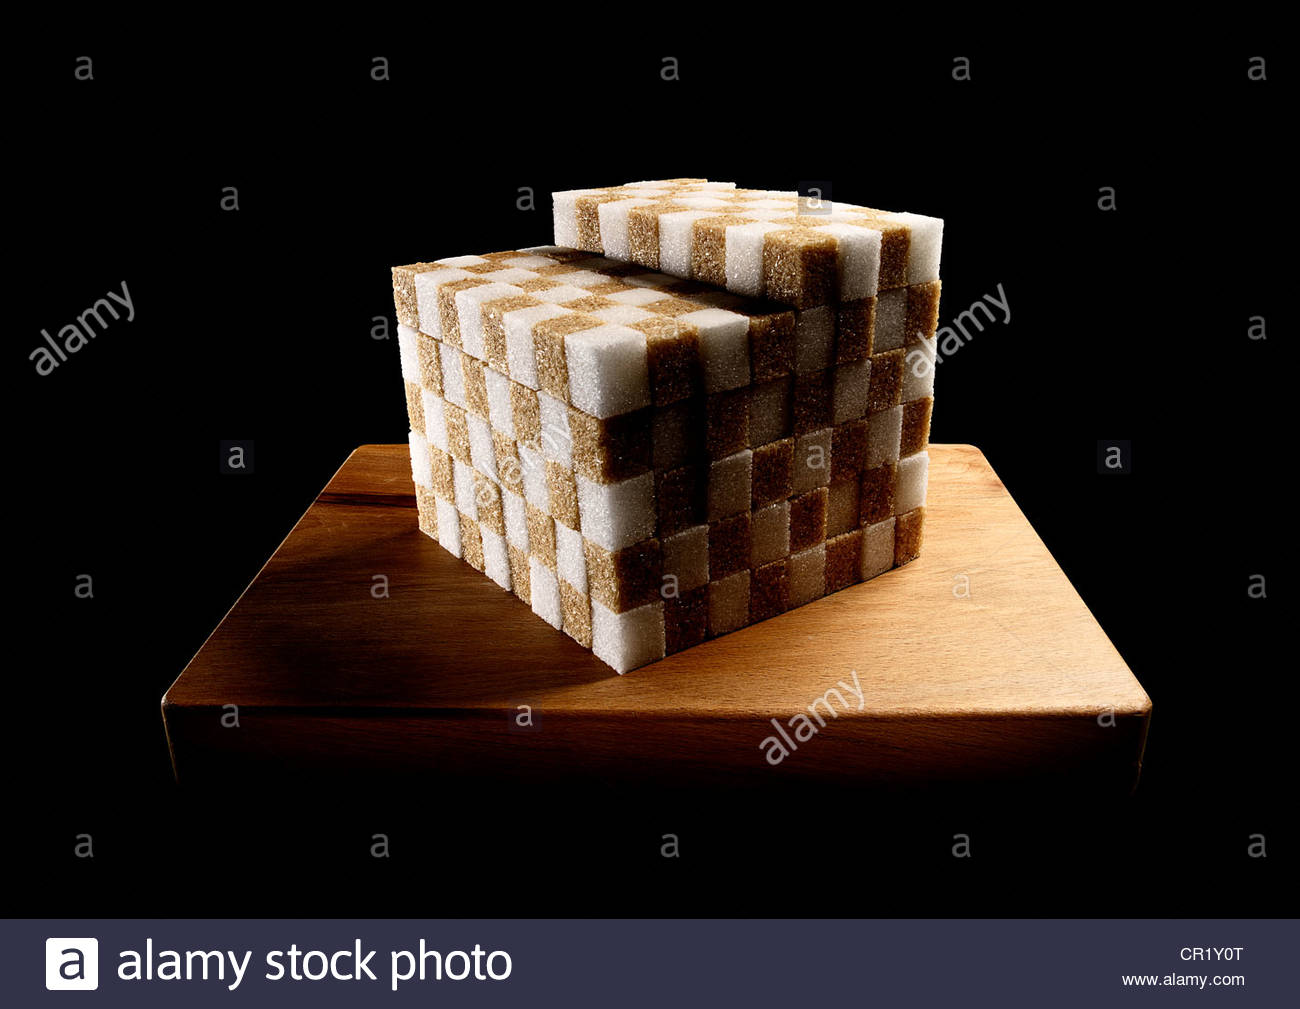 Sugar cubes stacked neatly on board - Stock Image